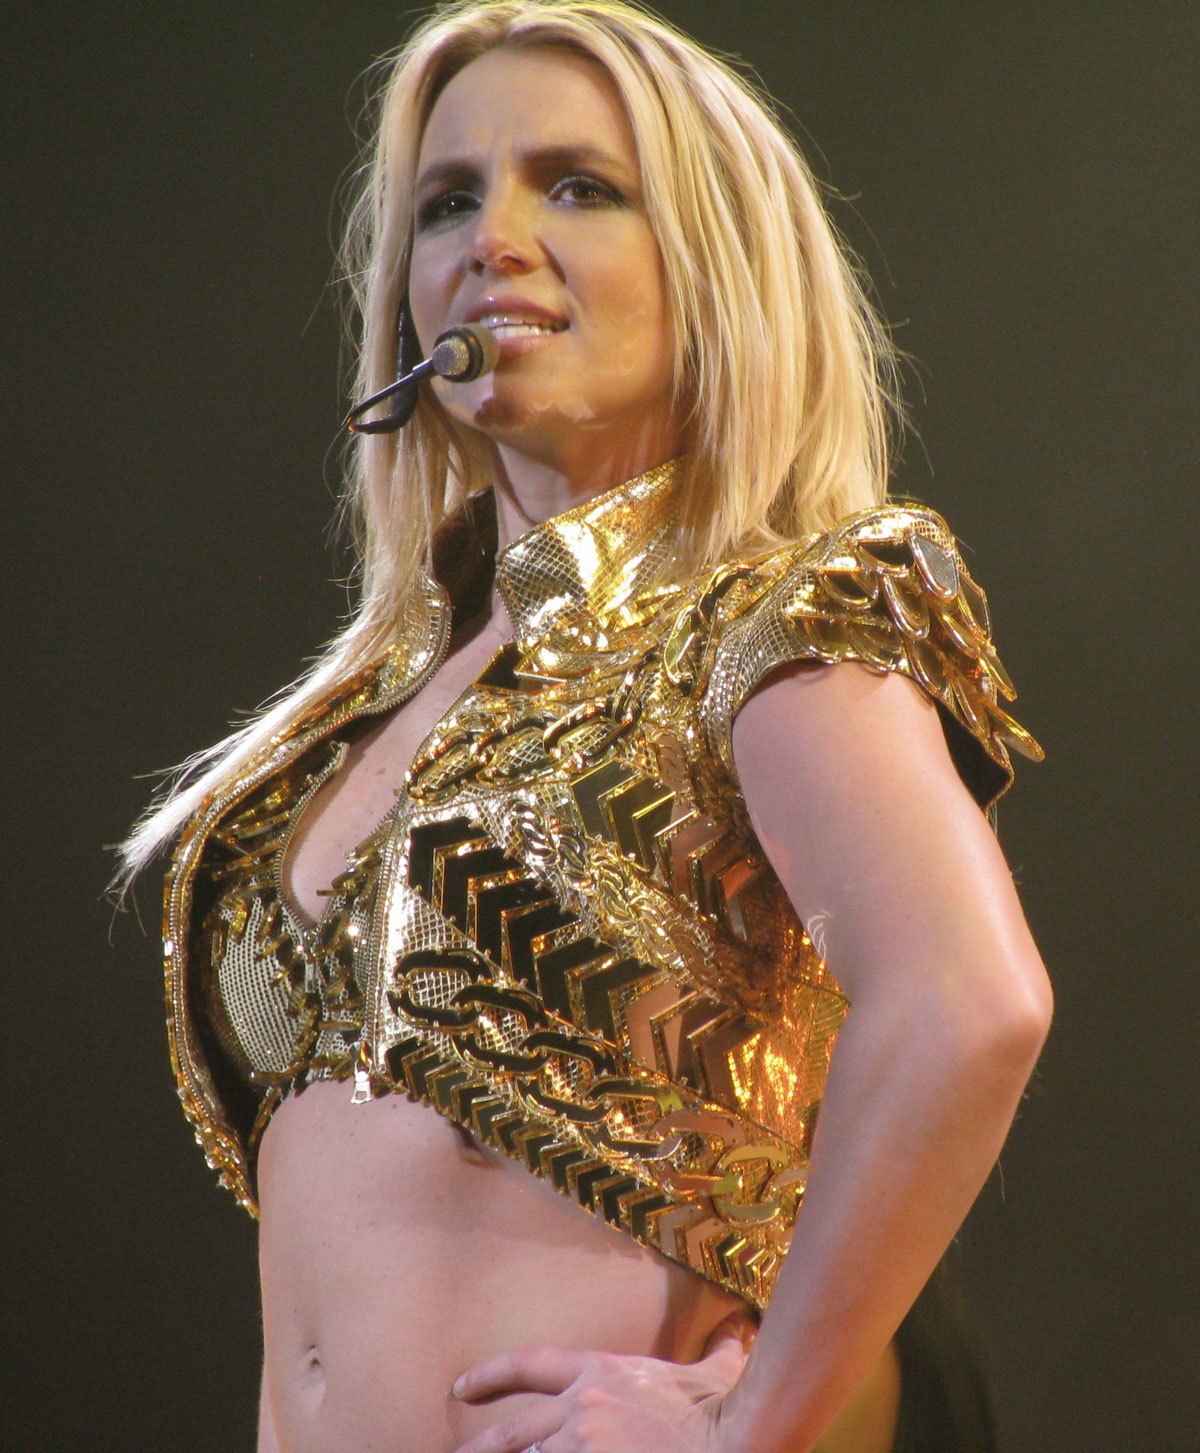 The hook up britney traducida